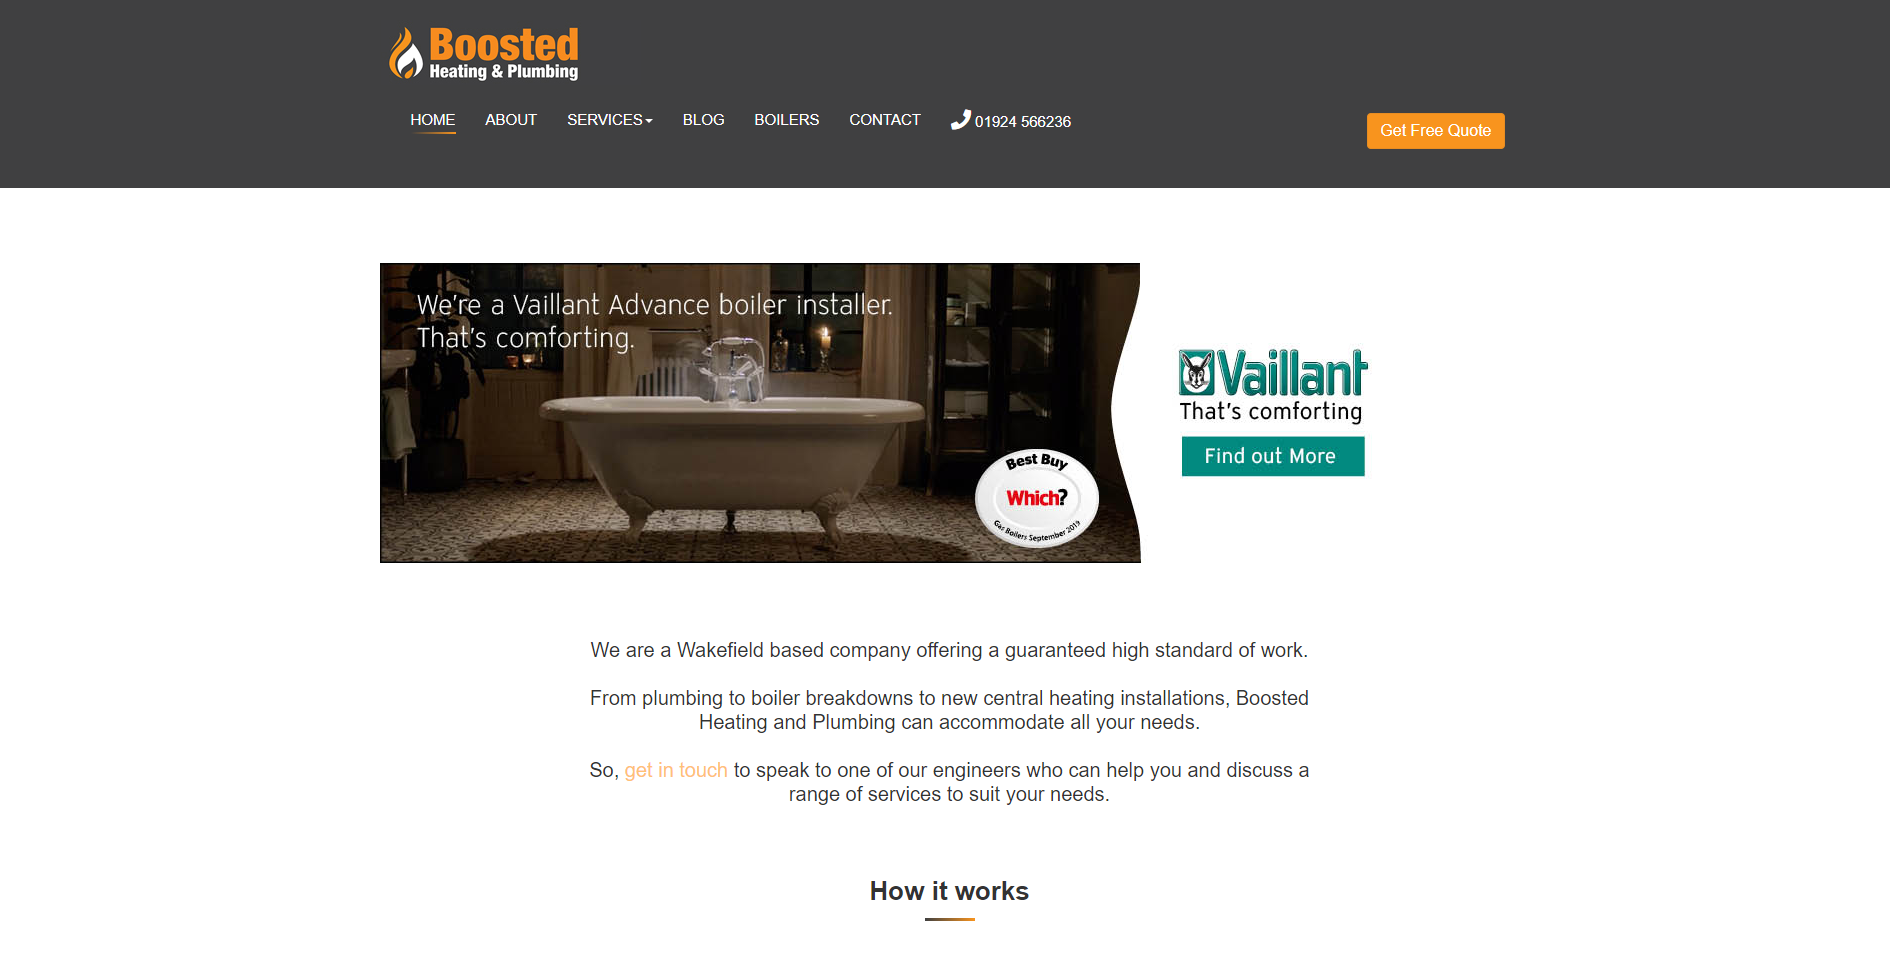 Boosted Heating & Plumbing /